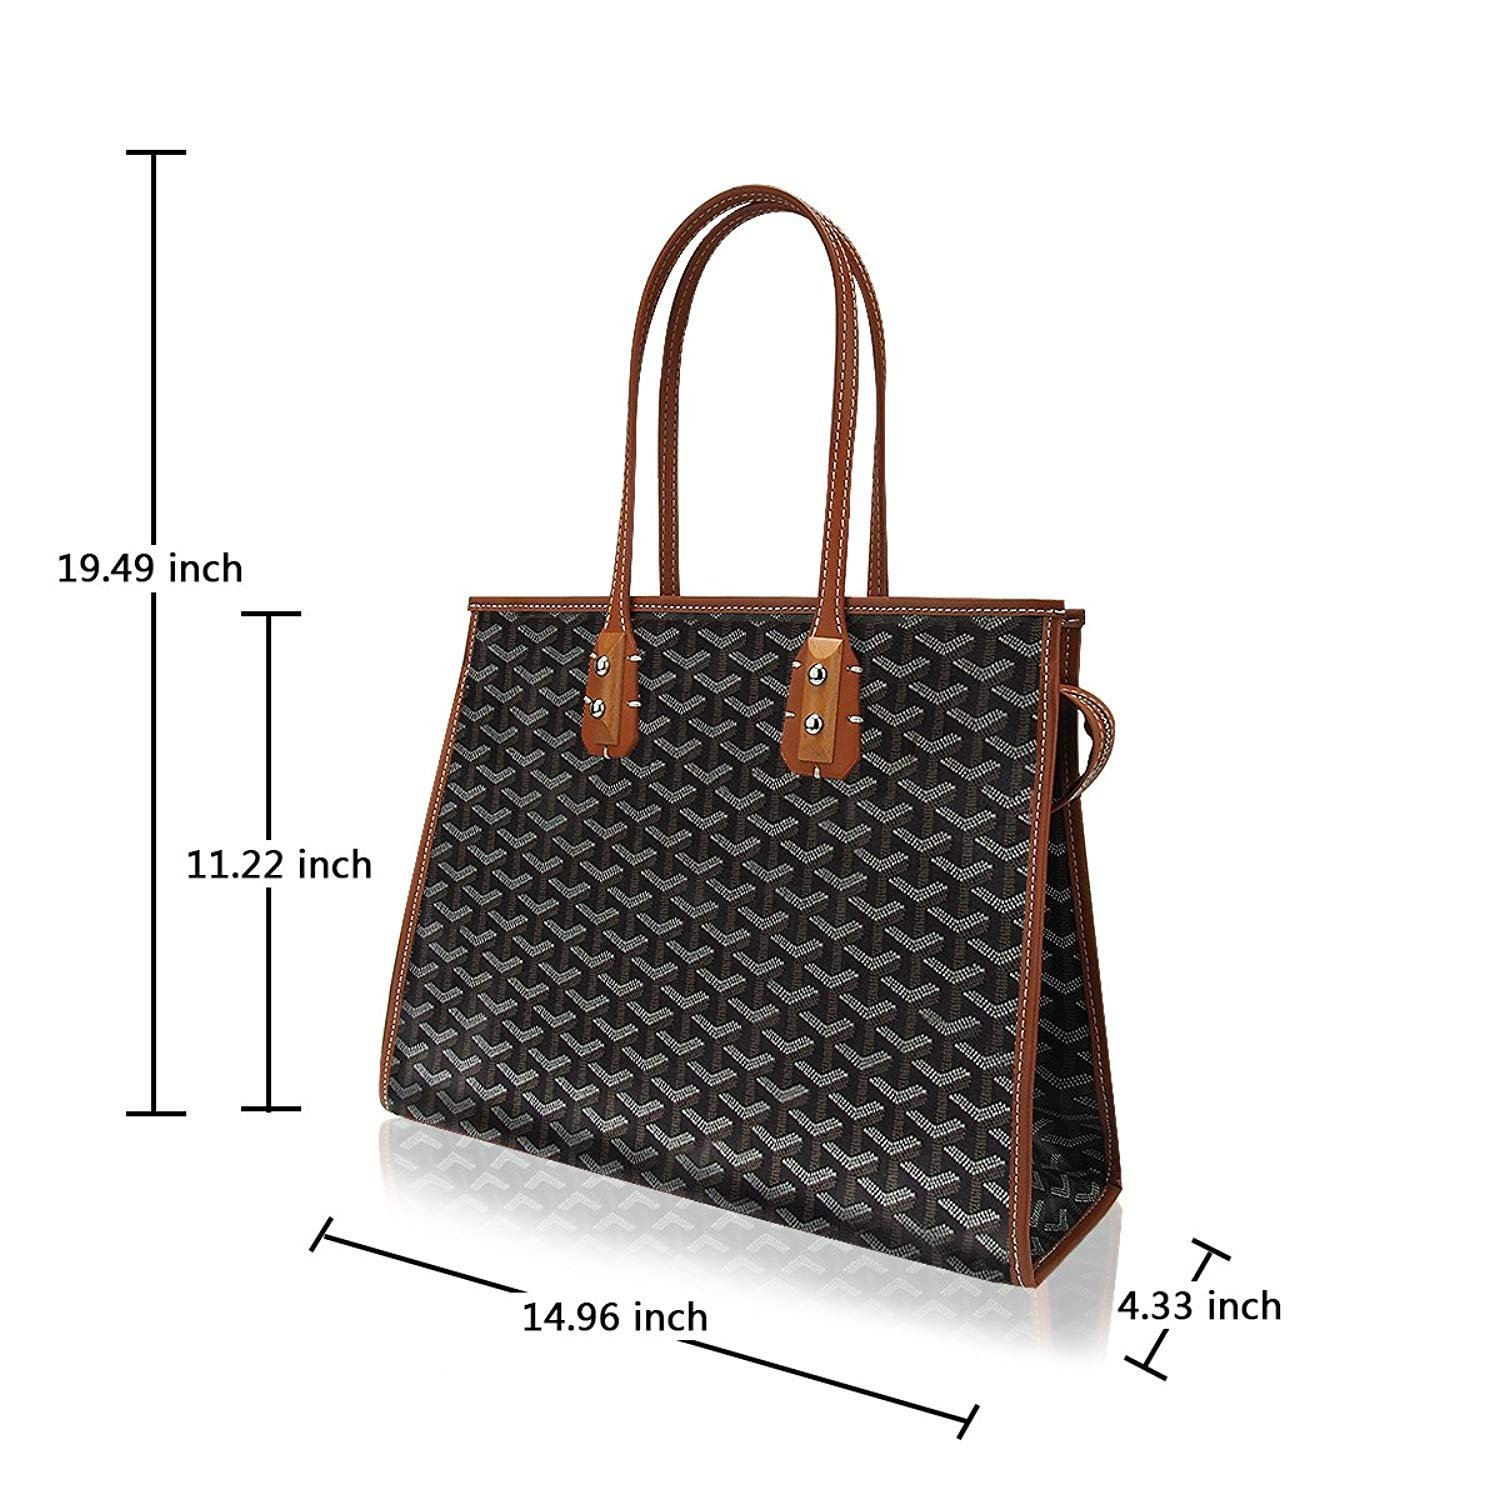 3926552ab116 Amazon.com: Stylesty High Grade Fashion Shopping PU Tote Bag Set, Designer  Shoulder Handbags top Handle Bag (Apricot): Shoes